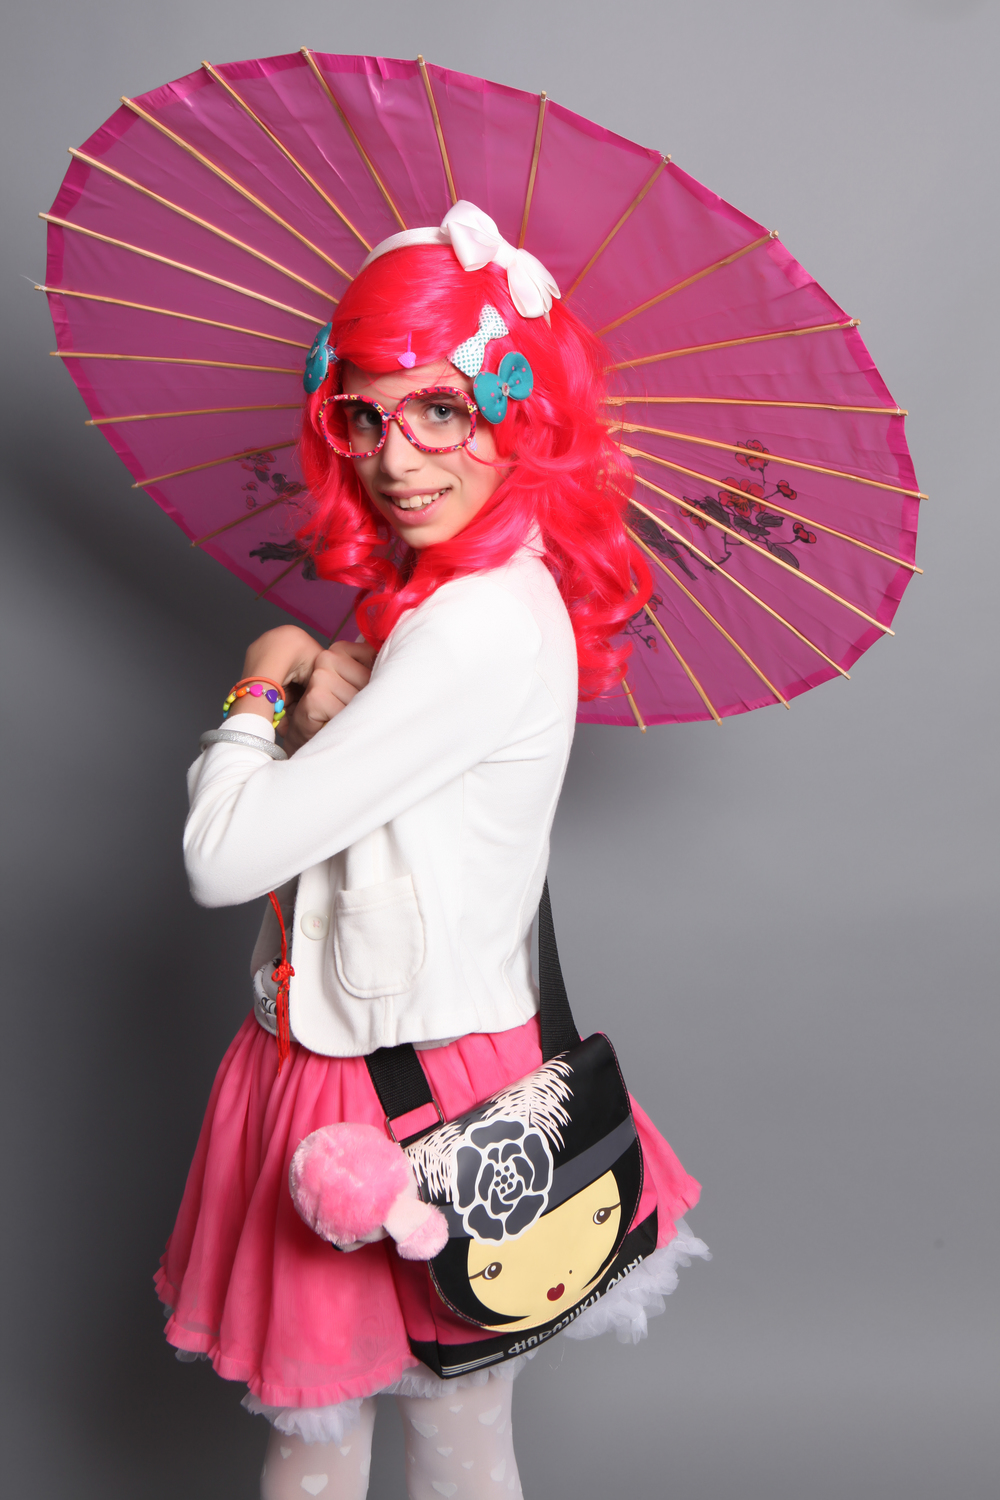 Photography by Beatriz-Fashion-Design-School-Austin-ASFD-Japanese-Harajuku-Fashion-Specialty-Course-style walk-guests12.jpg